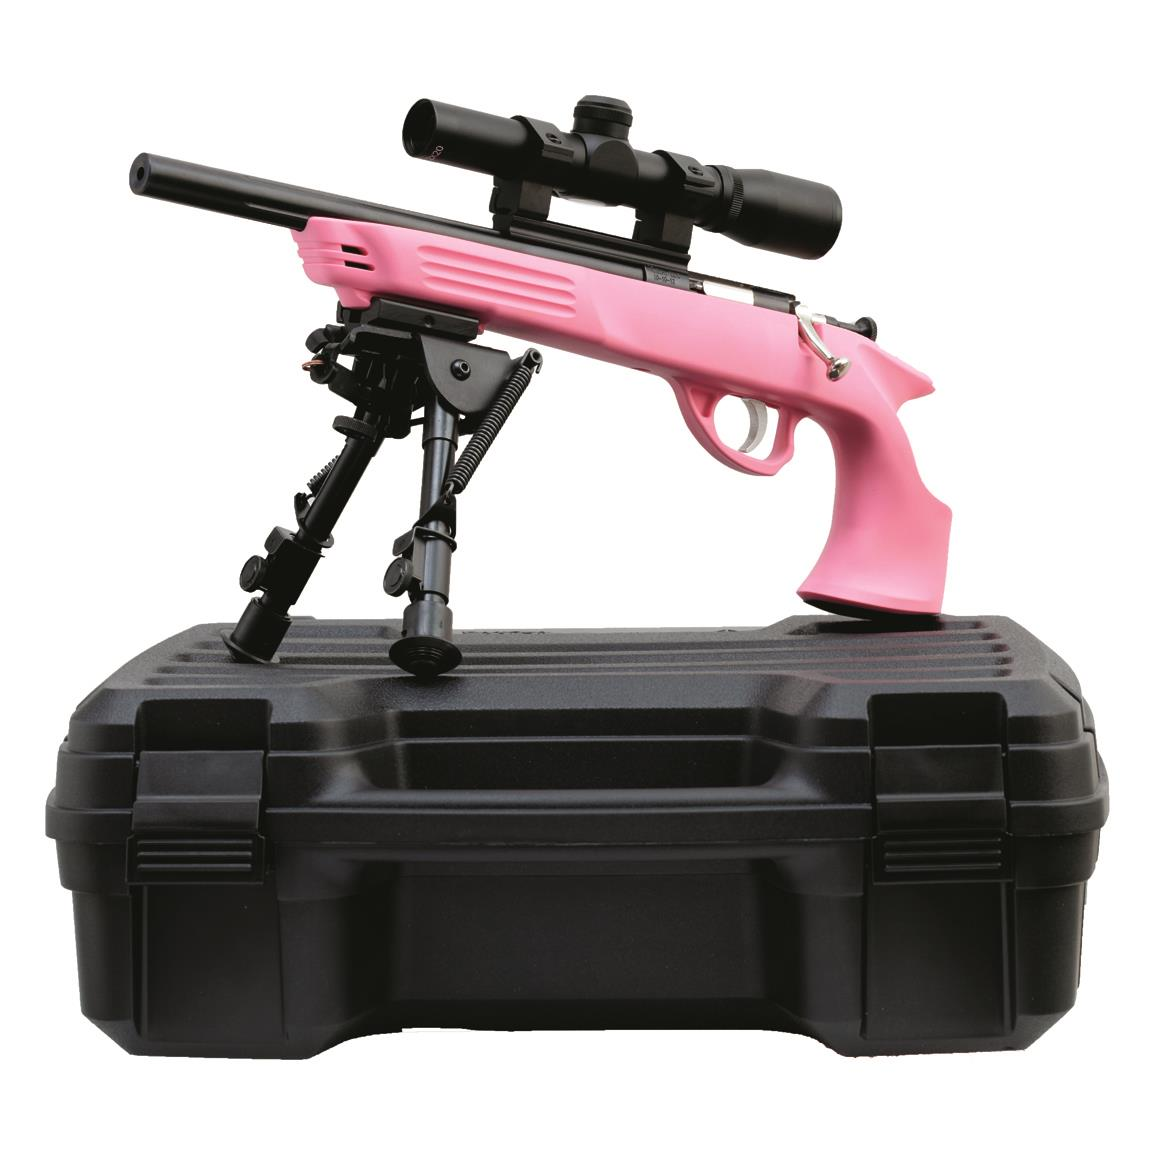 "KSA Crickett Pistol Package, .22LR, 10.5"" Barrel, Pink Stock, Scope, Bipod and Case, 1 Round"